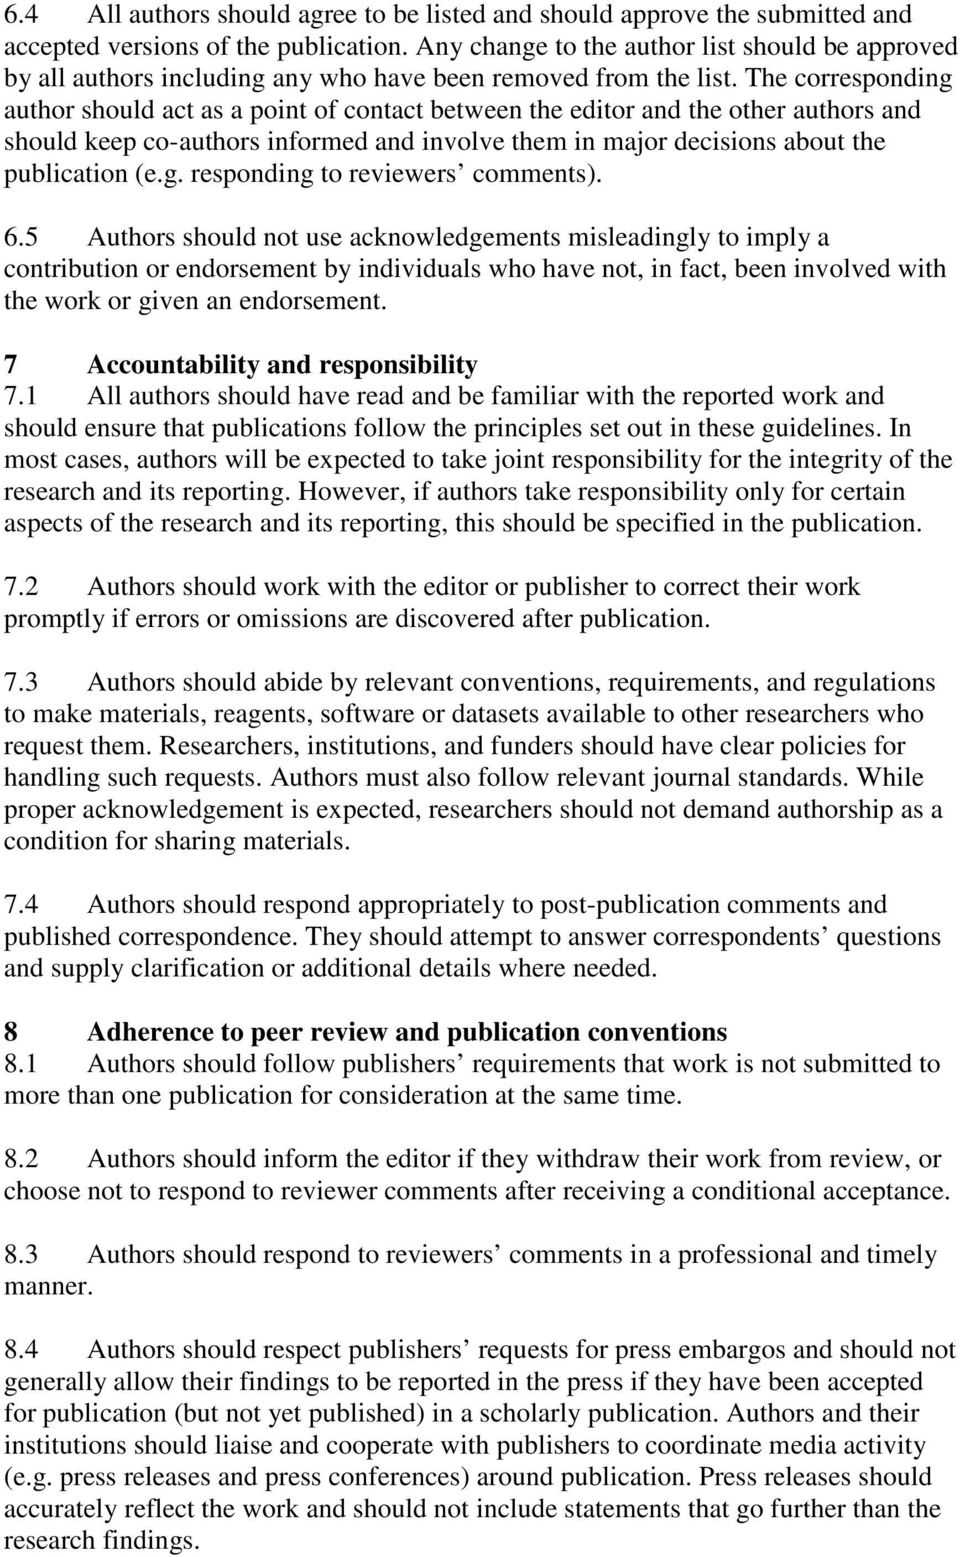 The corresponding author should act as a point of contact between the editor and the other authors and should keep co-authors informed and involve them in major decisions about the publication (e.g. responding to reviewers comments).